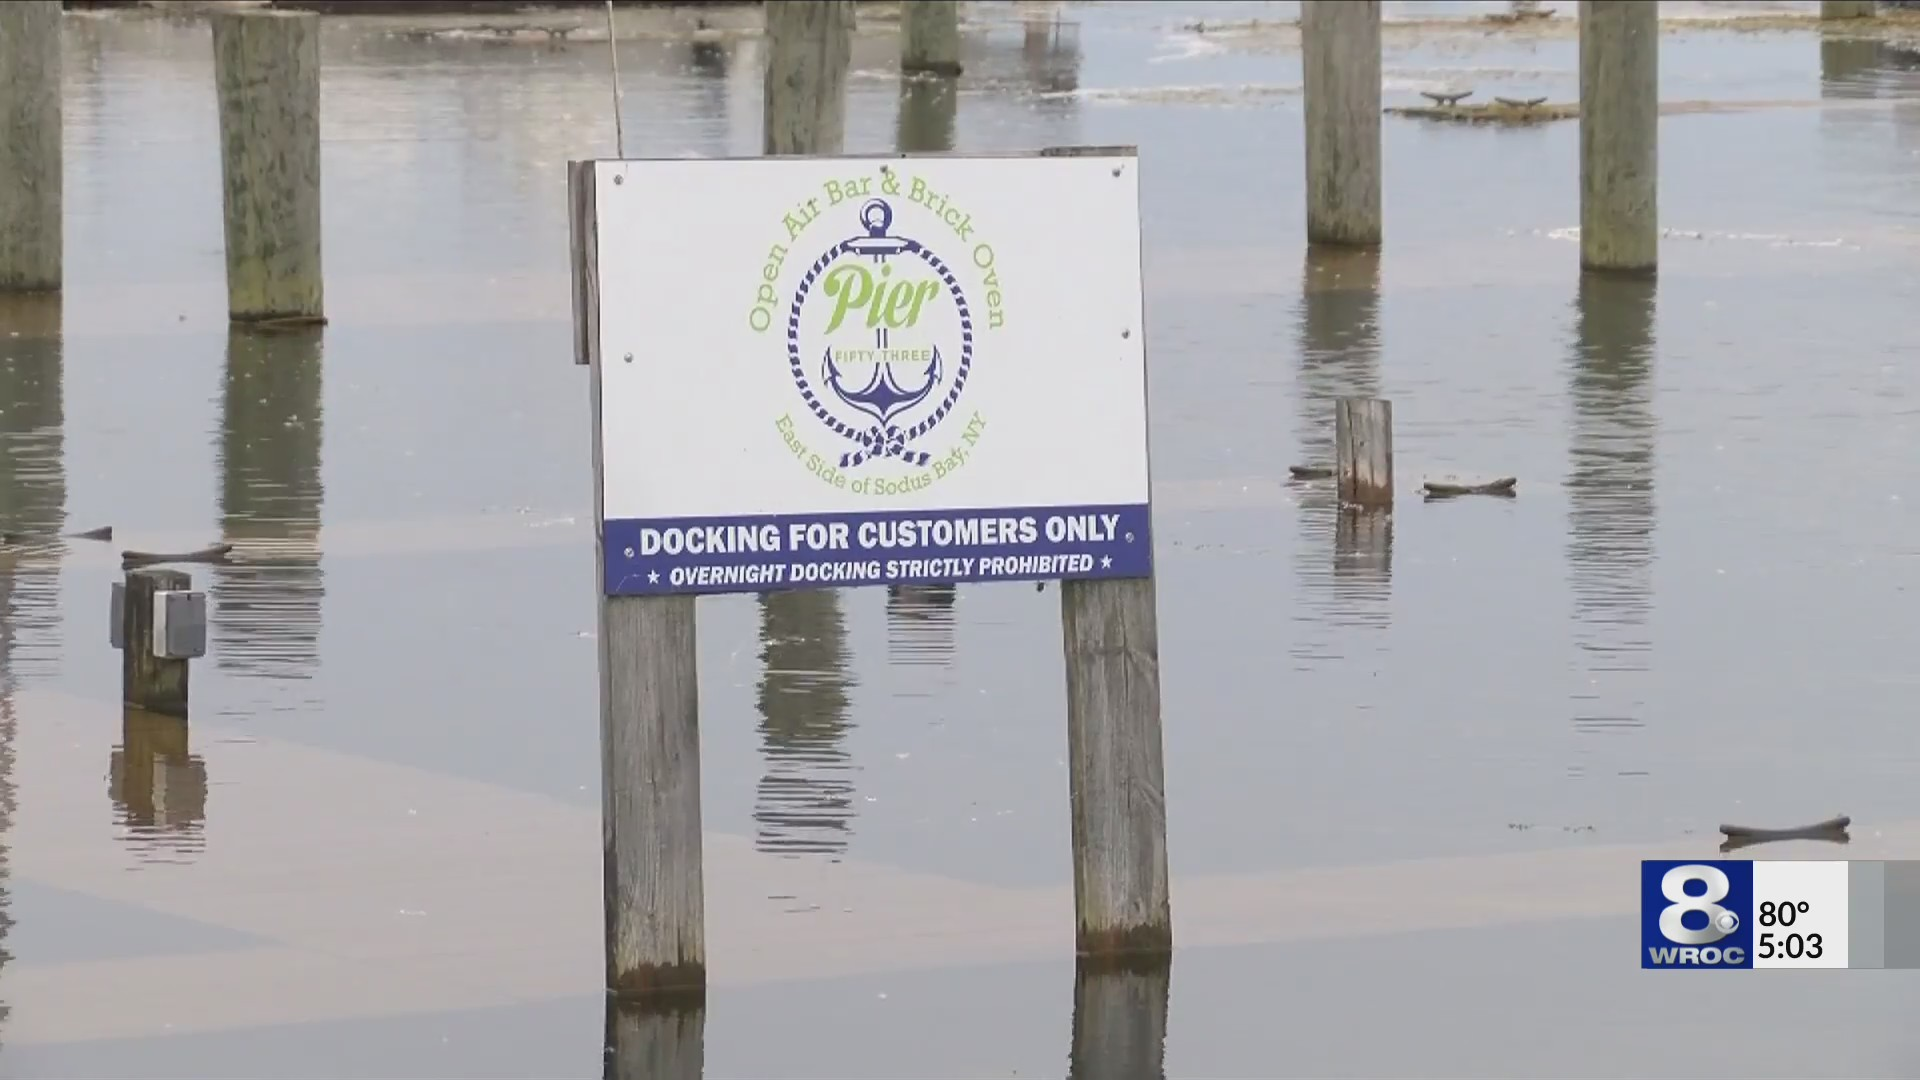 New restaurant struggles to stay afloat due to shoreline flooding